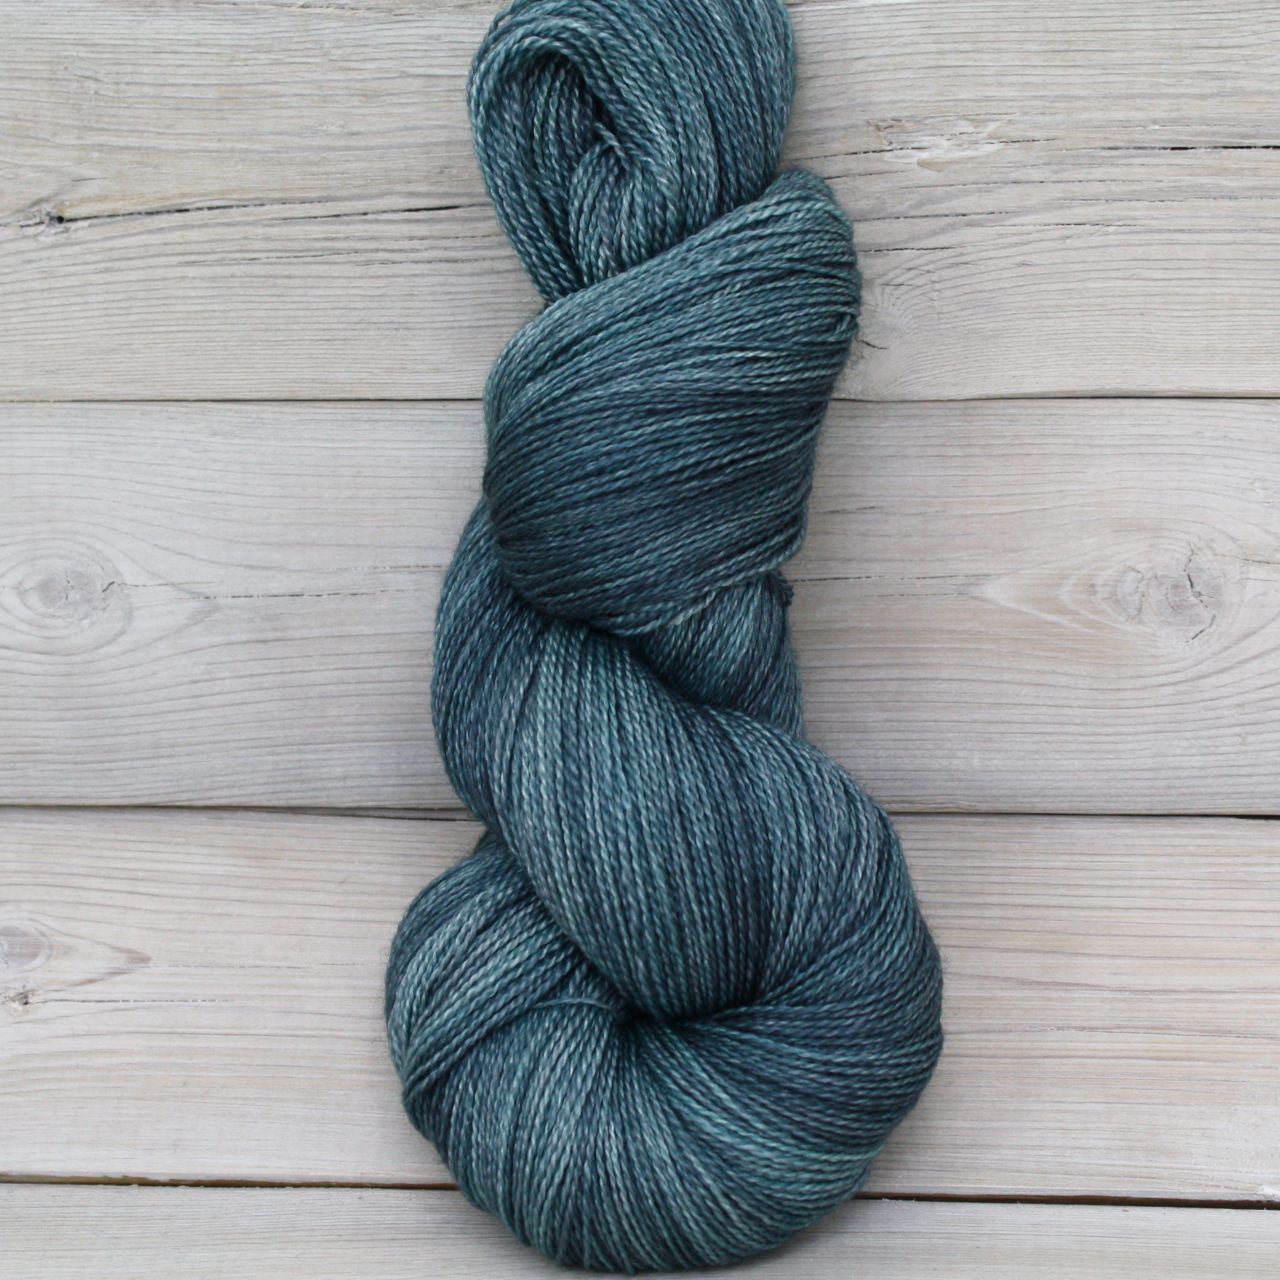 Starbright Yarn | Colorway: Marquesas